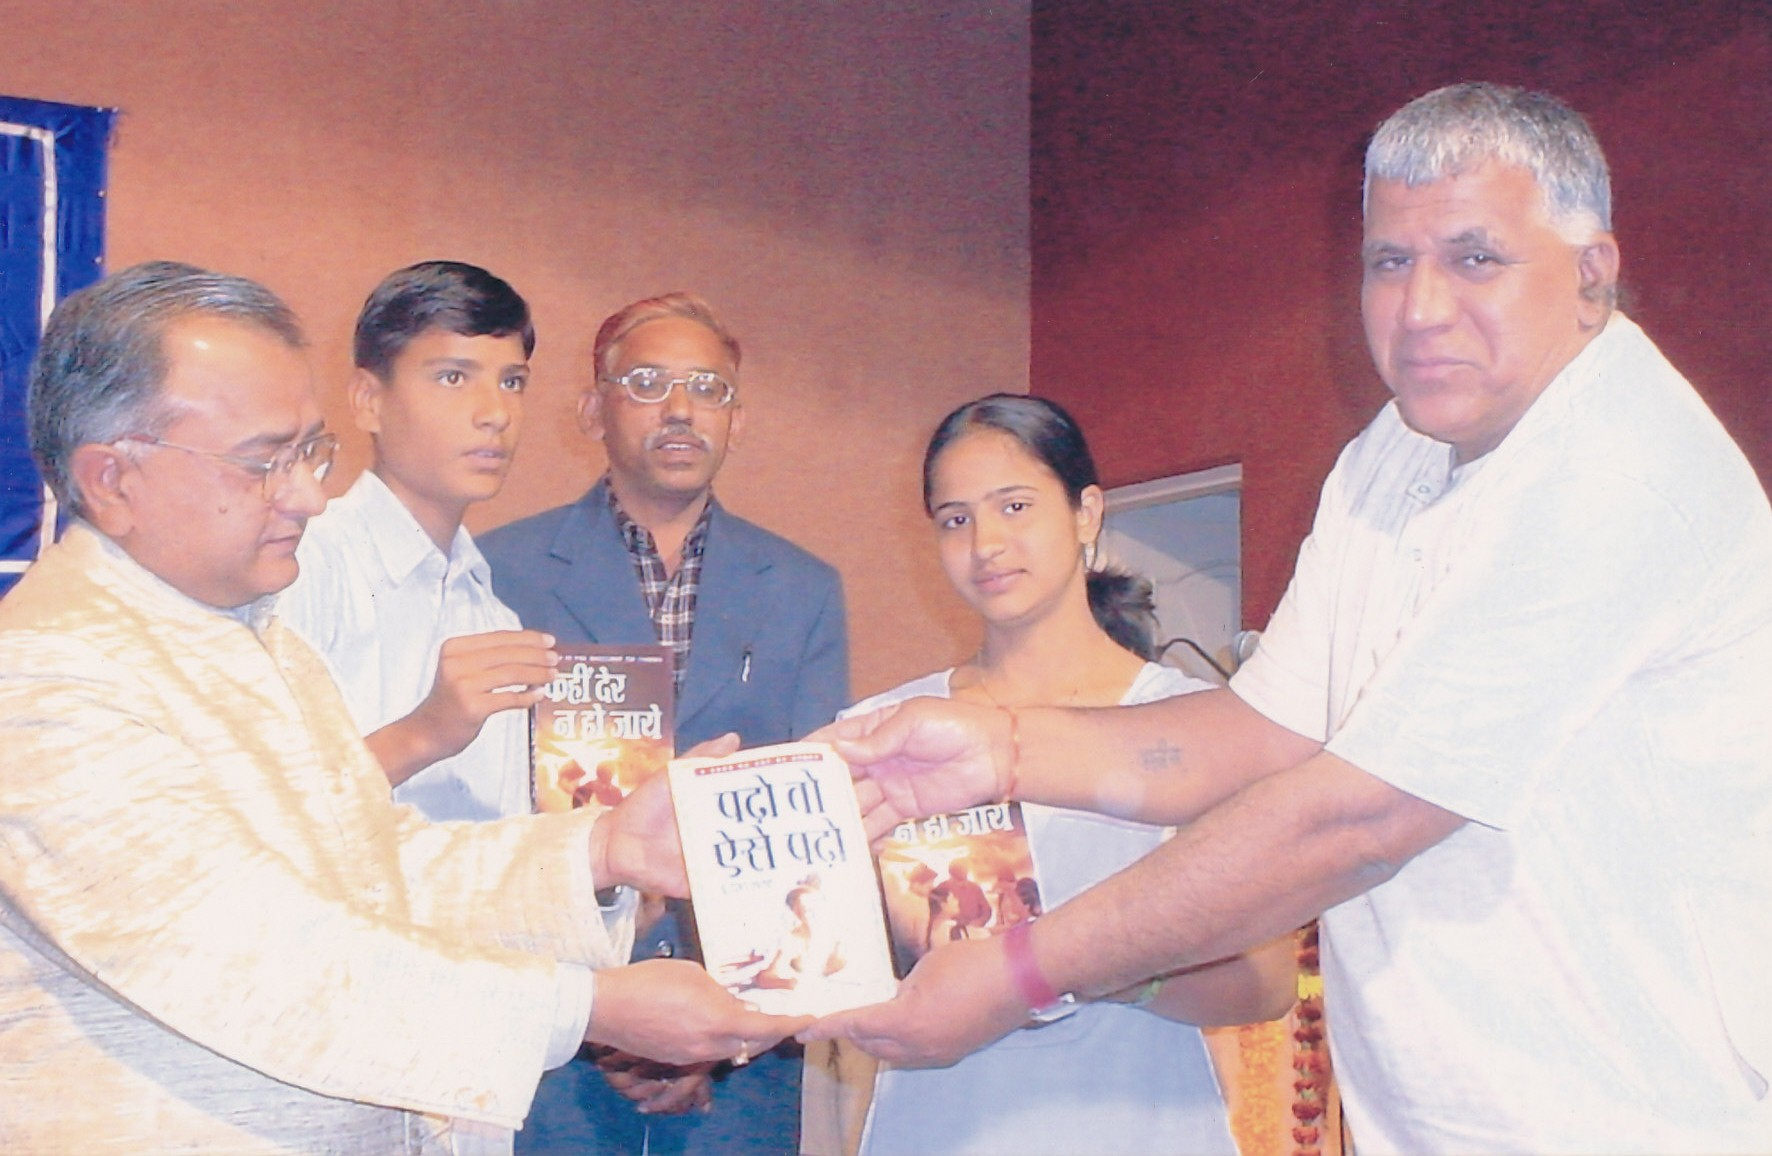 During Book release of 'Padho toh aise padho'